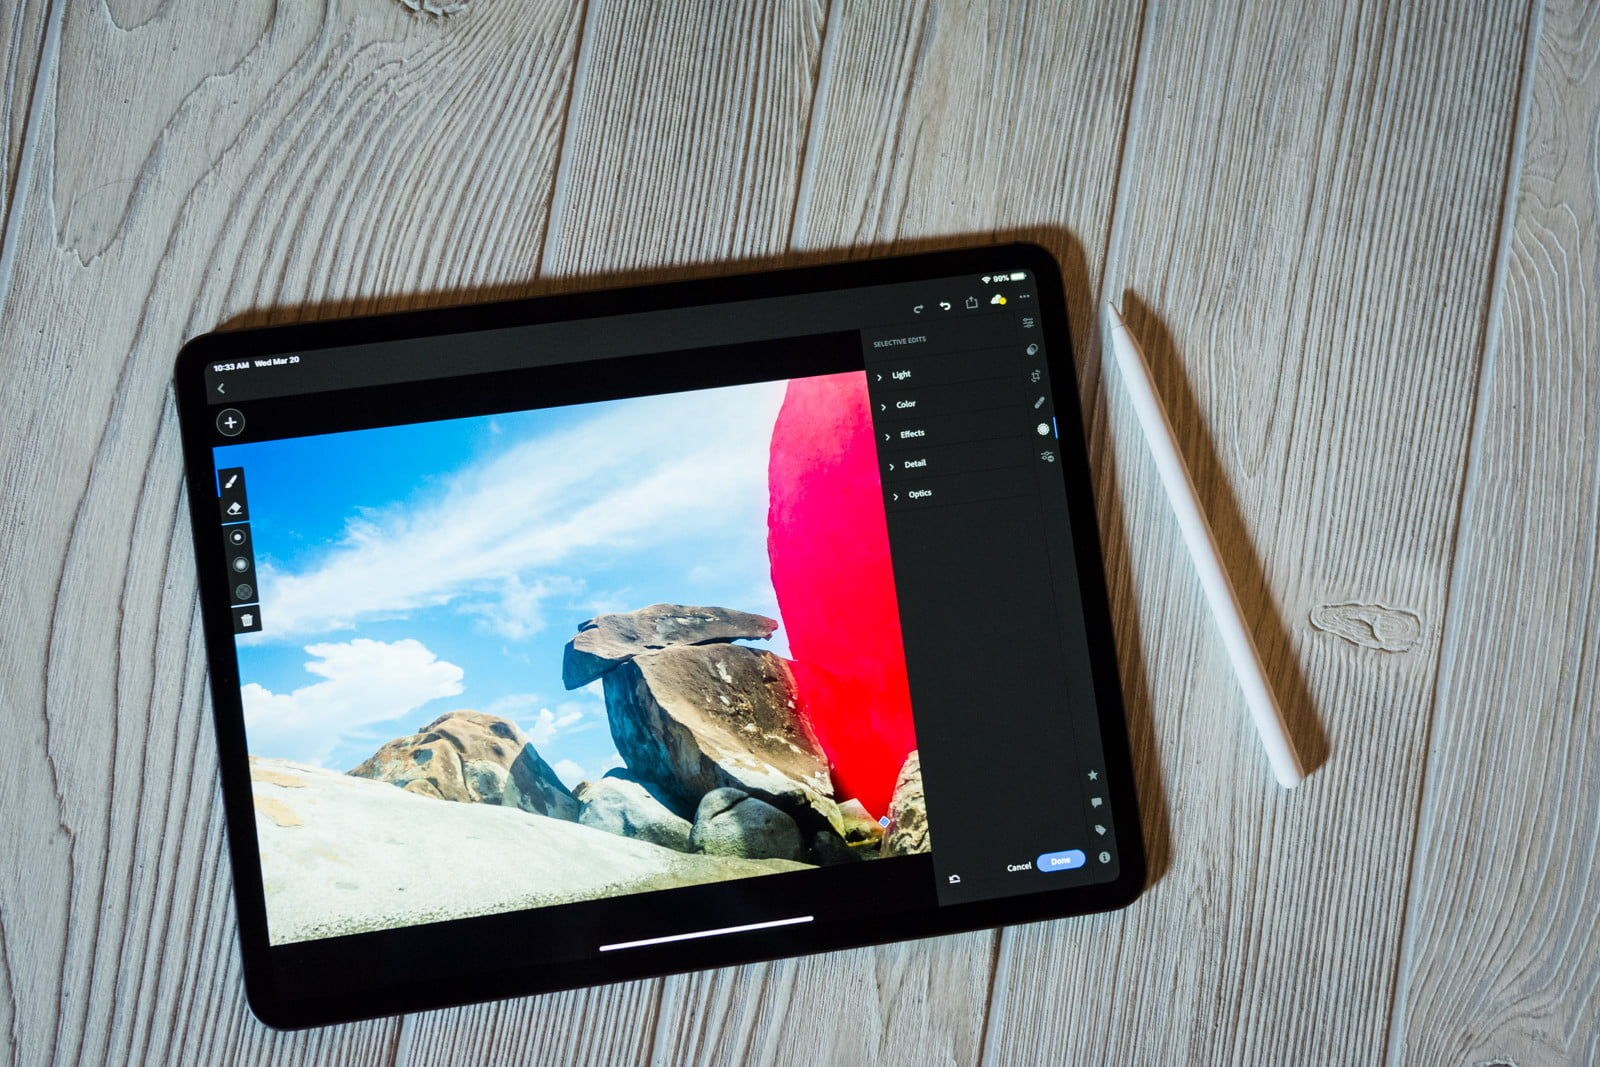 Photoshop for iPad Pro: Are Tablets Ready For Serious Photo